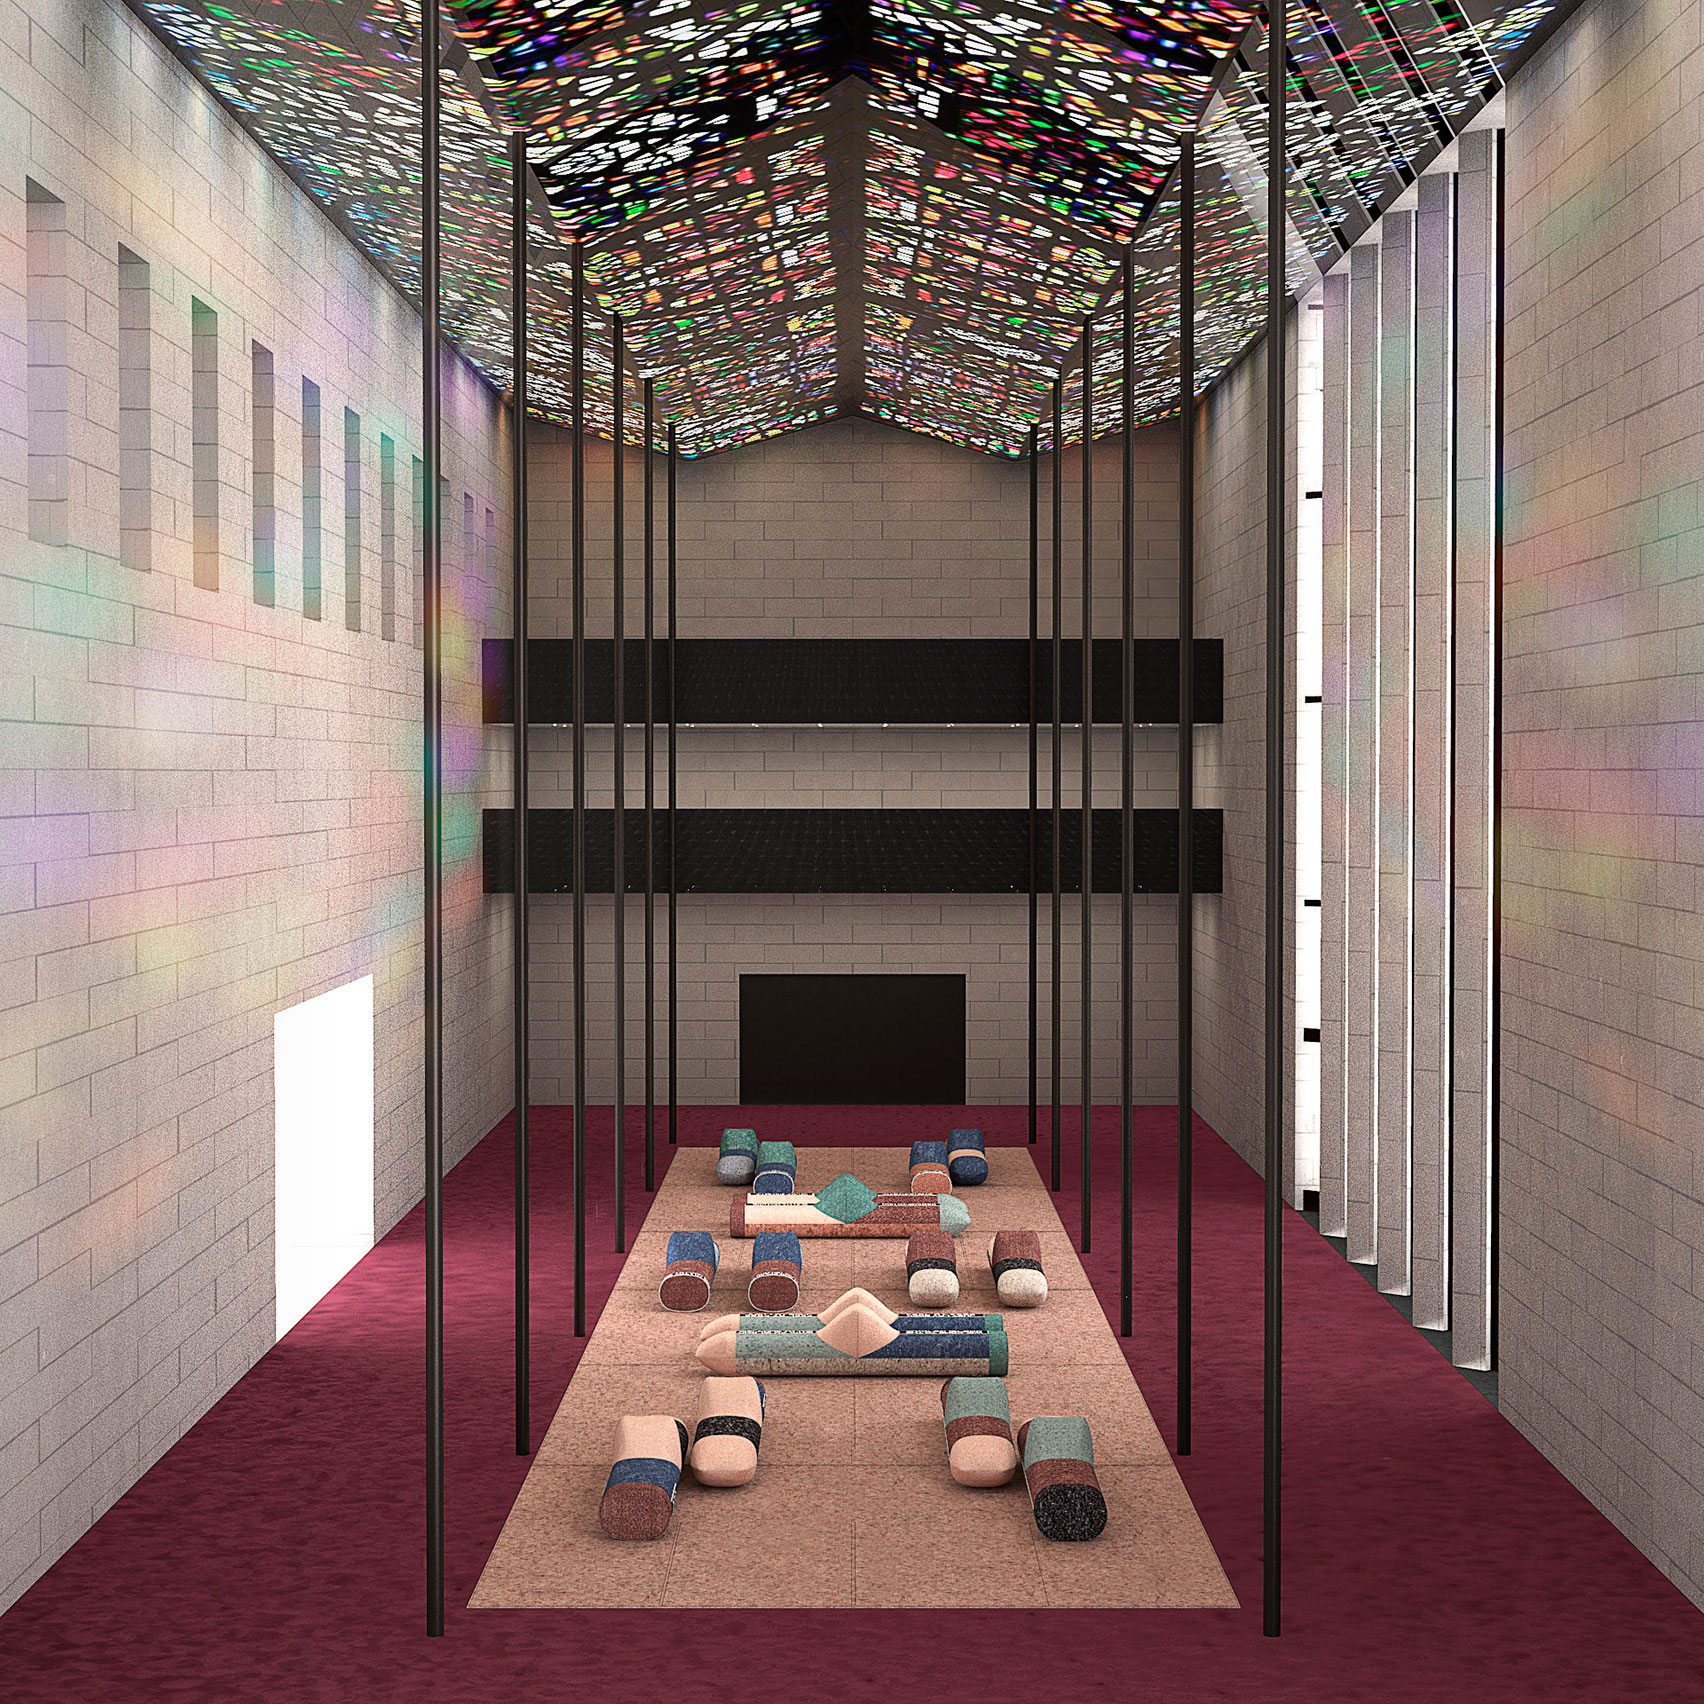 Render of Patricia Urquiola's Recycled Woollen Island installation at NGV Triennial 2020